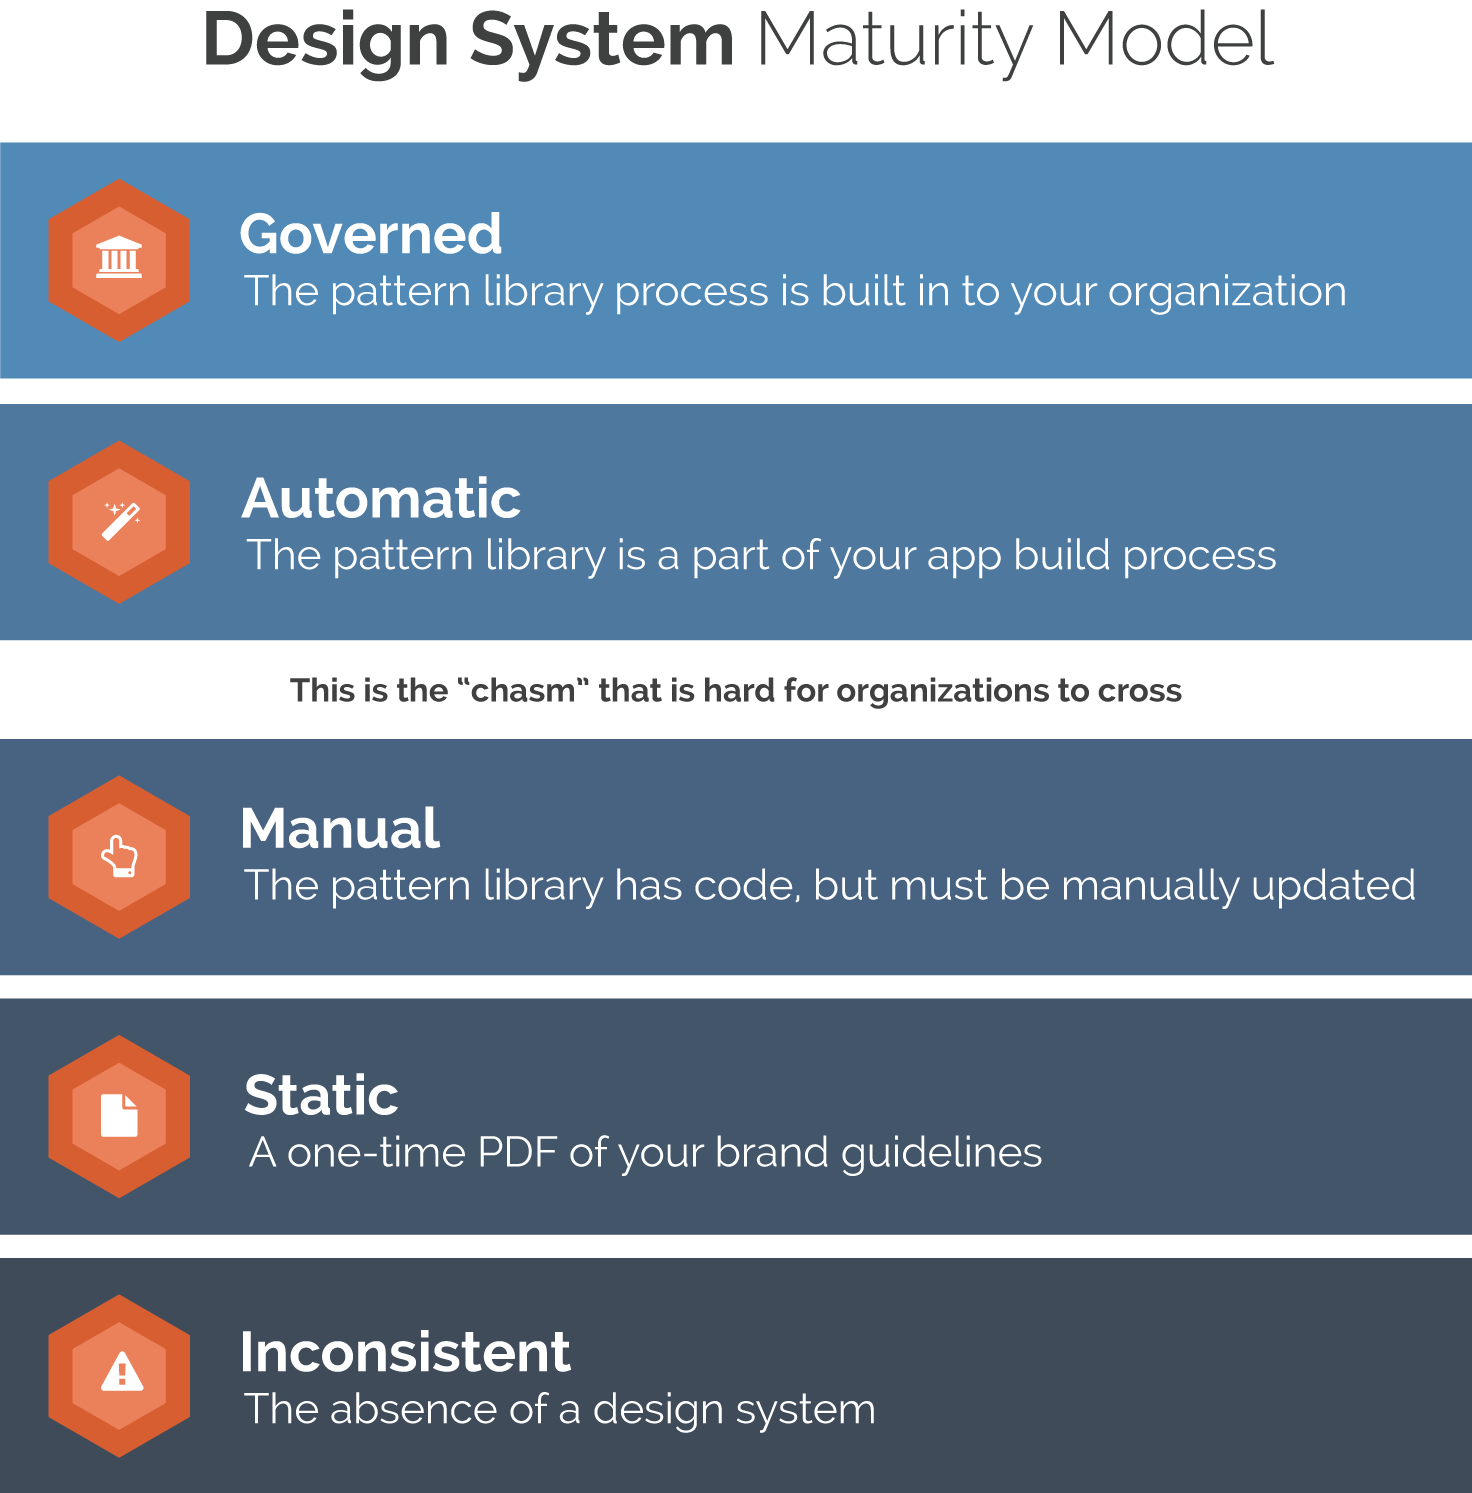 The Design System Maturity Model